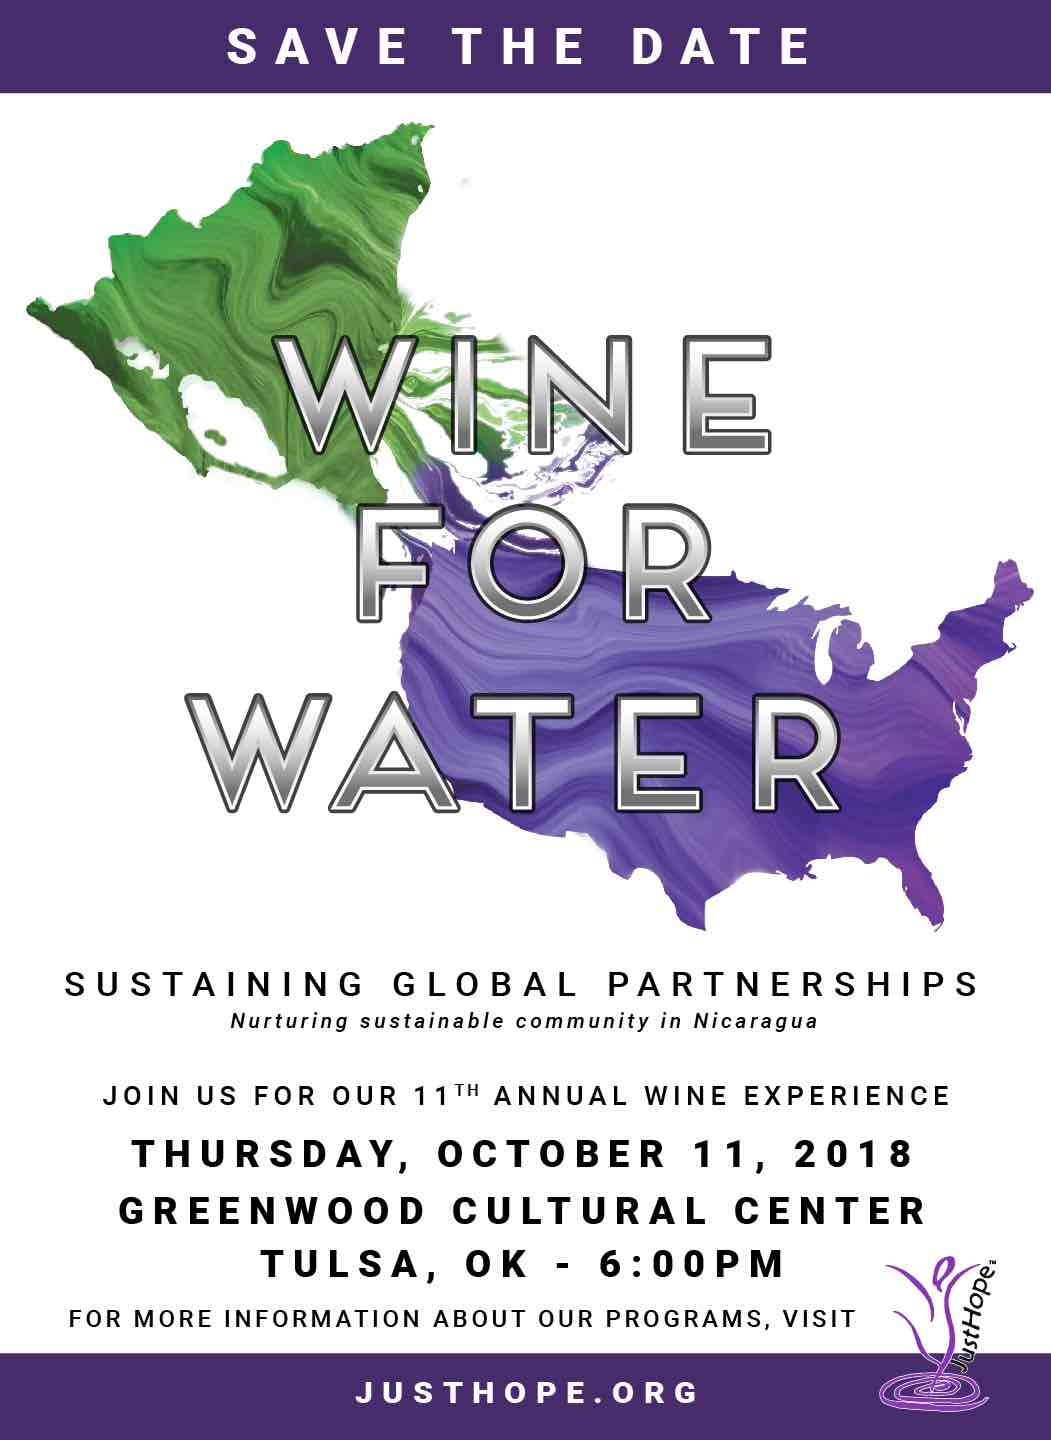 Save the Date: October 11, 2018, 6pm